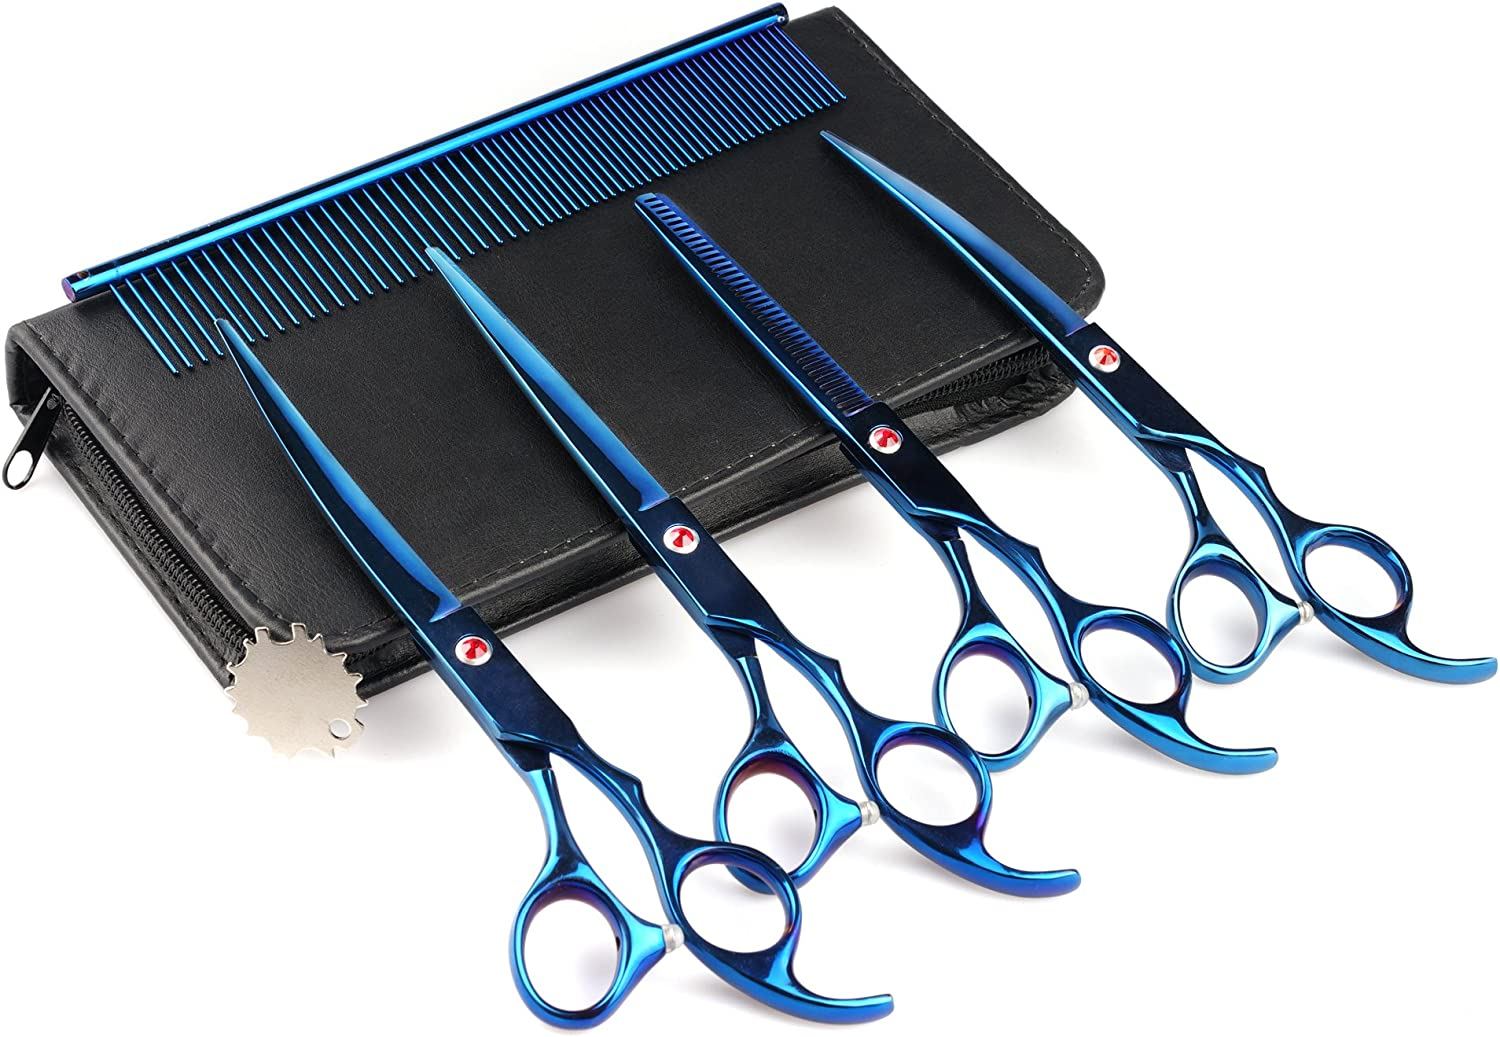 Fancystyle Dog Grooming Scissors Kit, 7 inches Stainless Steel Pet Scissors Curved Scissors Curved Thinning Shear and Steel Grooming Comb Set with Clean Cloth (bluee)